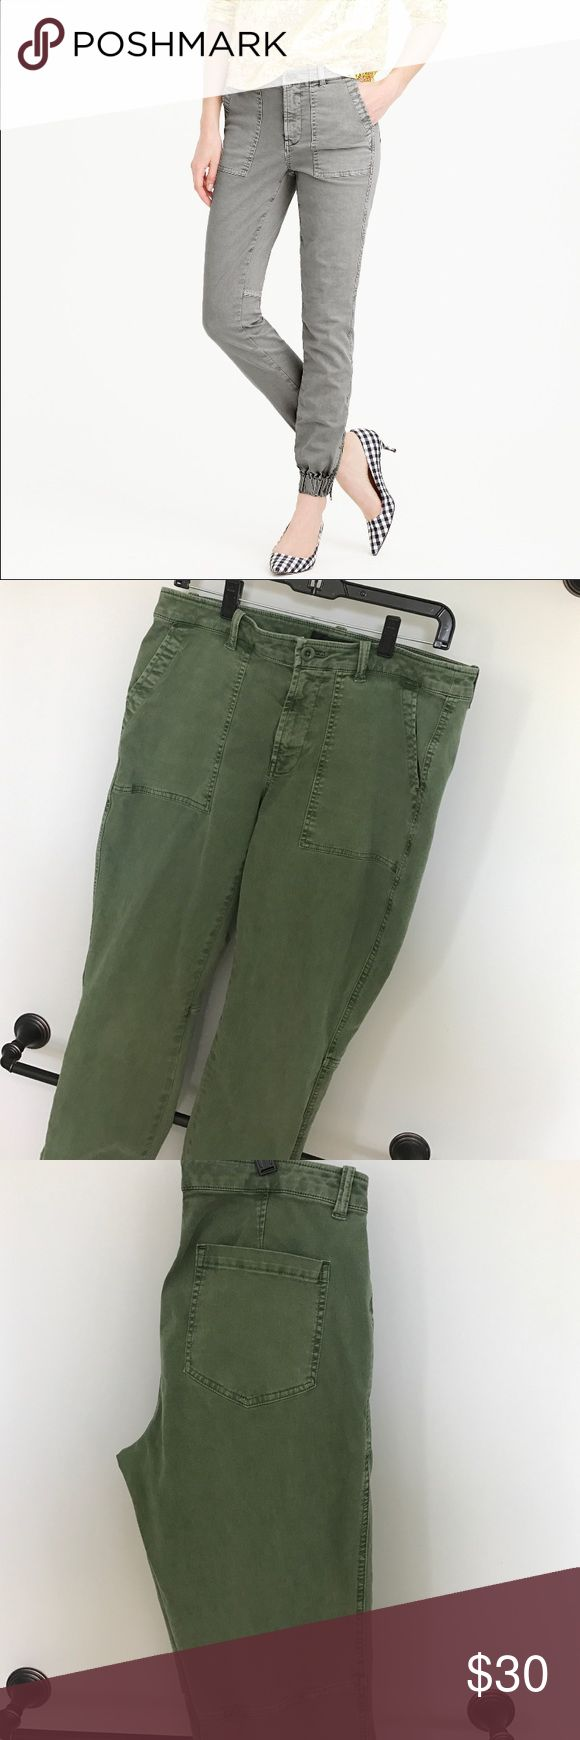 Slim Cargo Pant in Stretch Chino Sits at hip. Fitted through hip and thigh, with a slim leg.  Inspired by a vintage military pant, these slim chinos are the perfect solution to denim fatigue. Made from a stretchy cotton chino and finished with elastic cuffs and ankle zips 98% Cotton 2% elastane. Patch pockets, back patch pockets. Machine wash. Item C7233.  Size 10 Tall. 28 inch inseam. Worn a few times, still in good condition. J. Crew Pants Ankle & Cropped